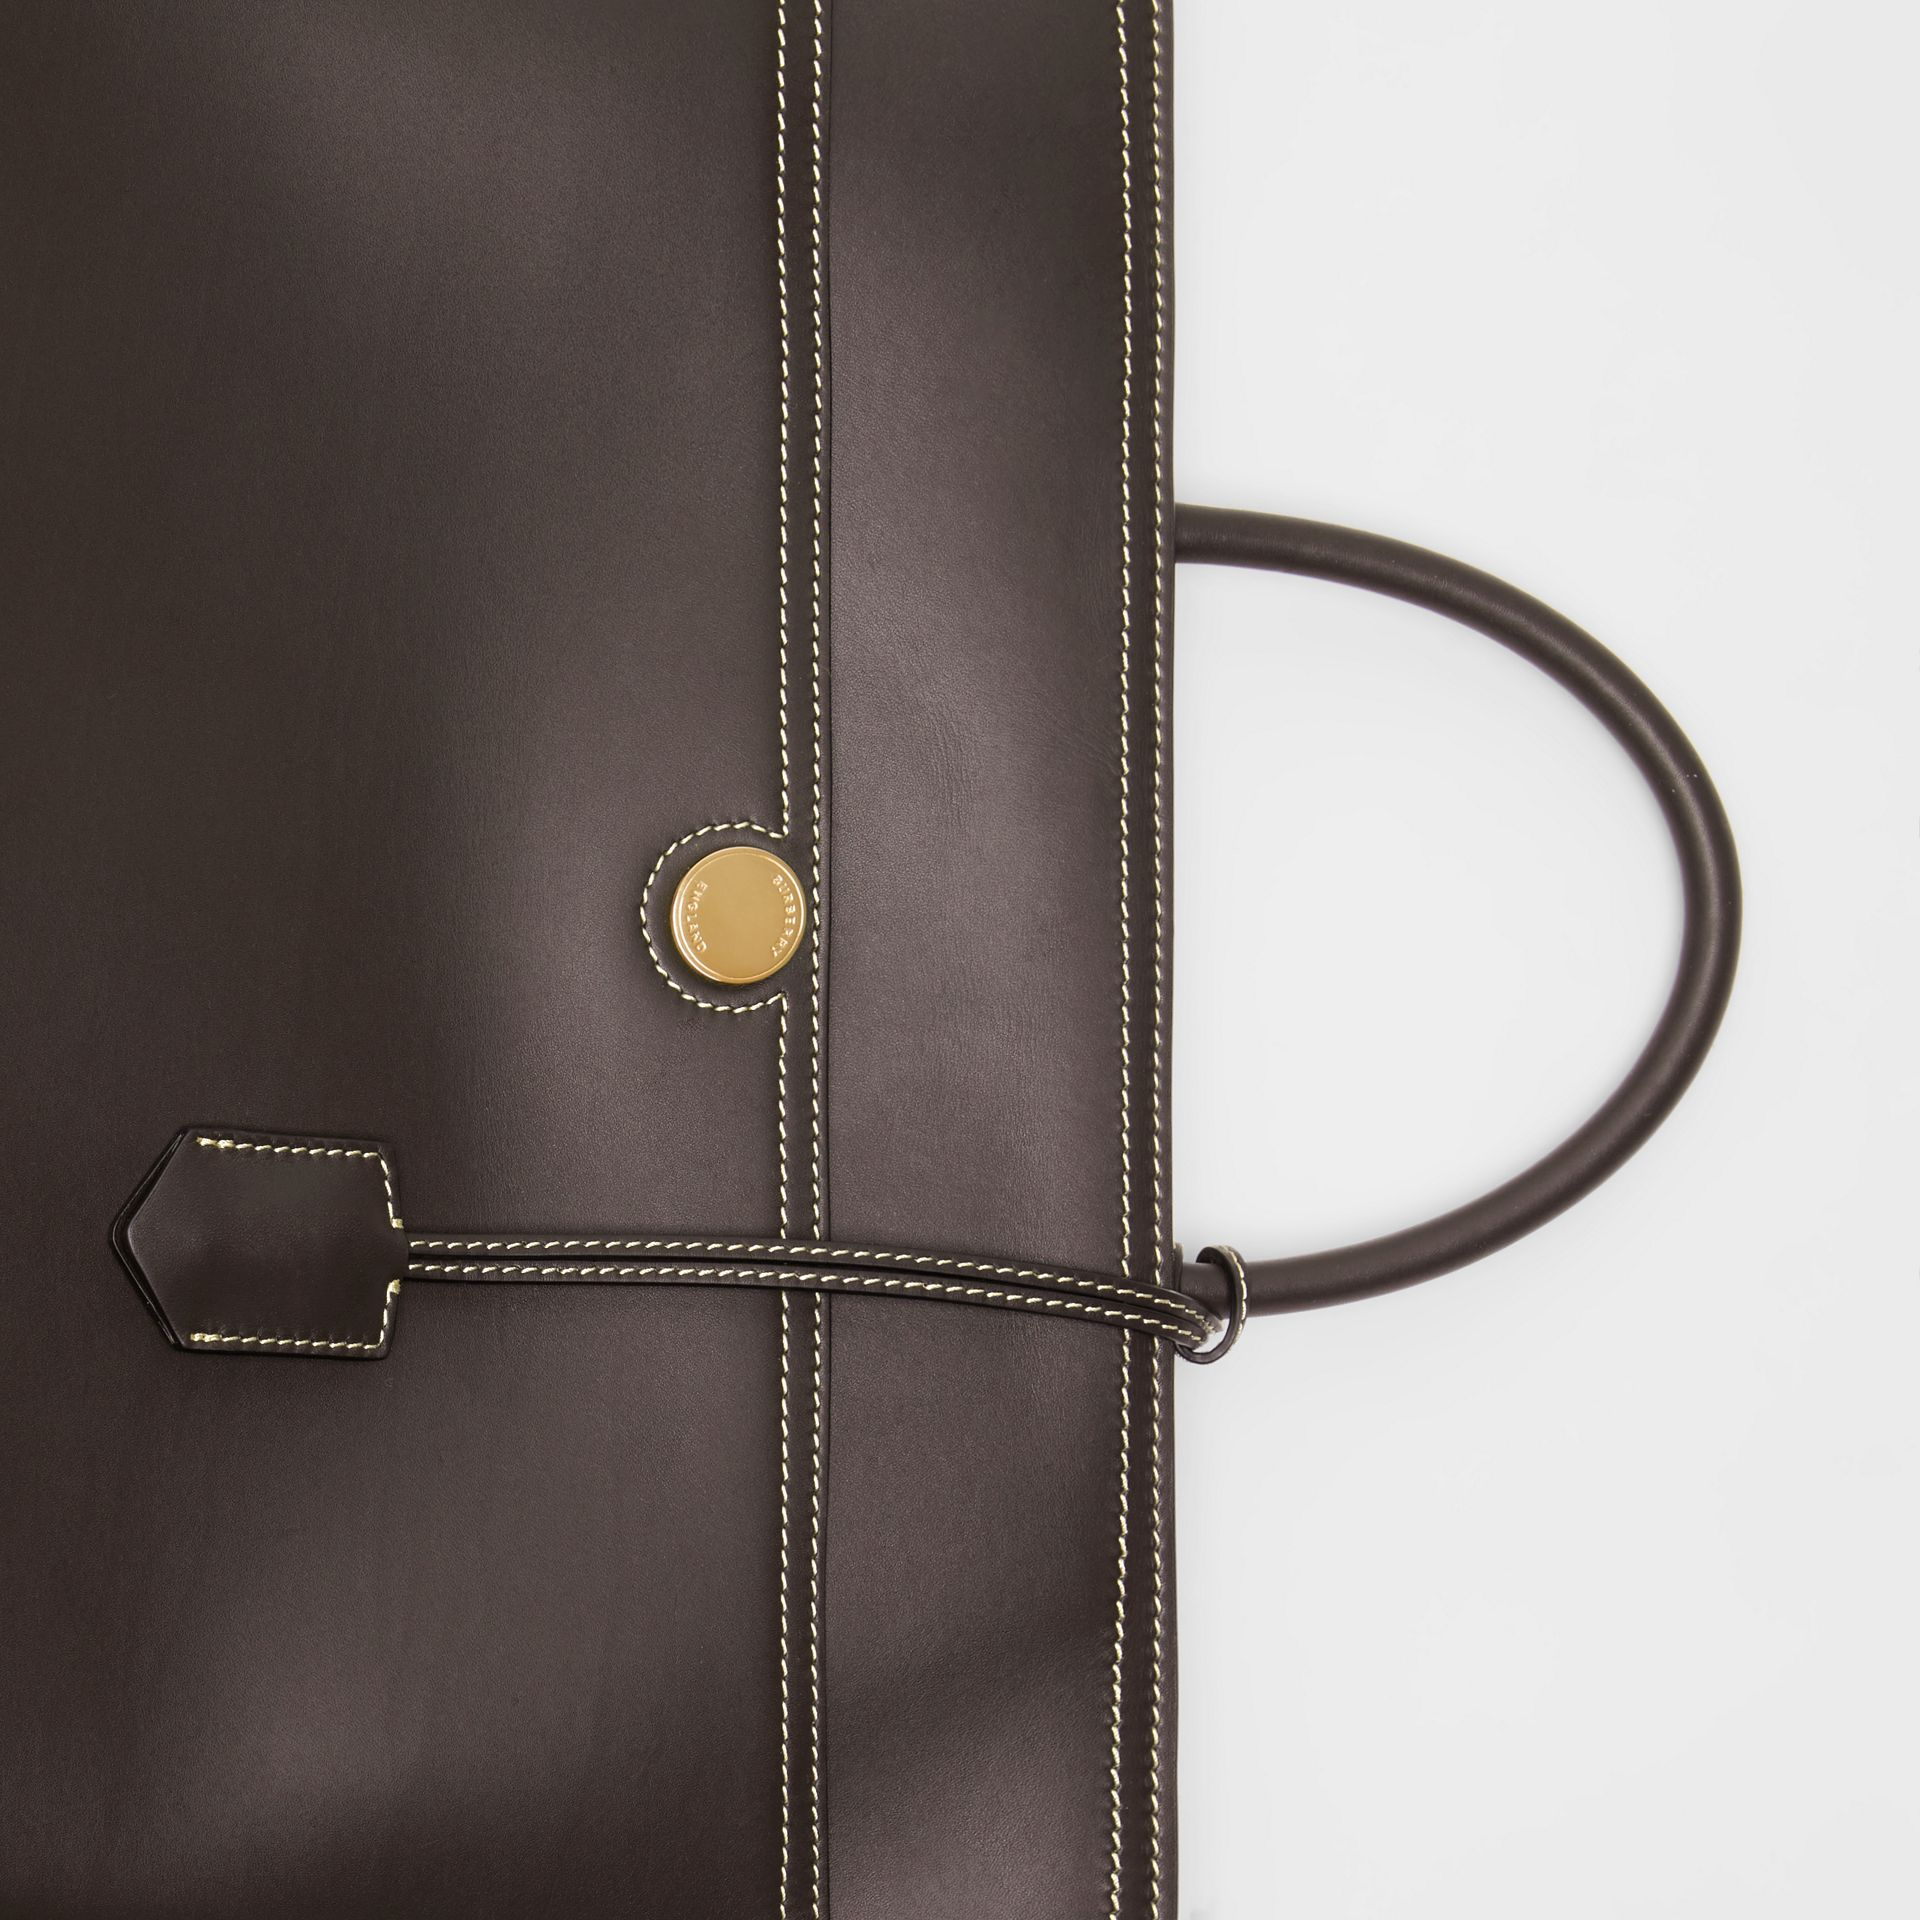 Leather Society Top Handle Bag in Coffee - Women | Burberry United Kingdom - gallery image 1